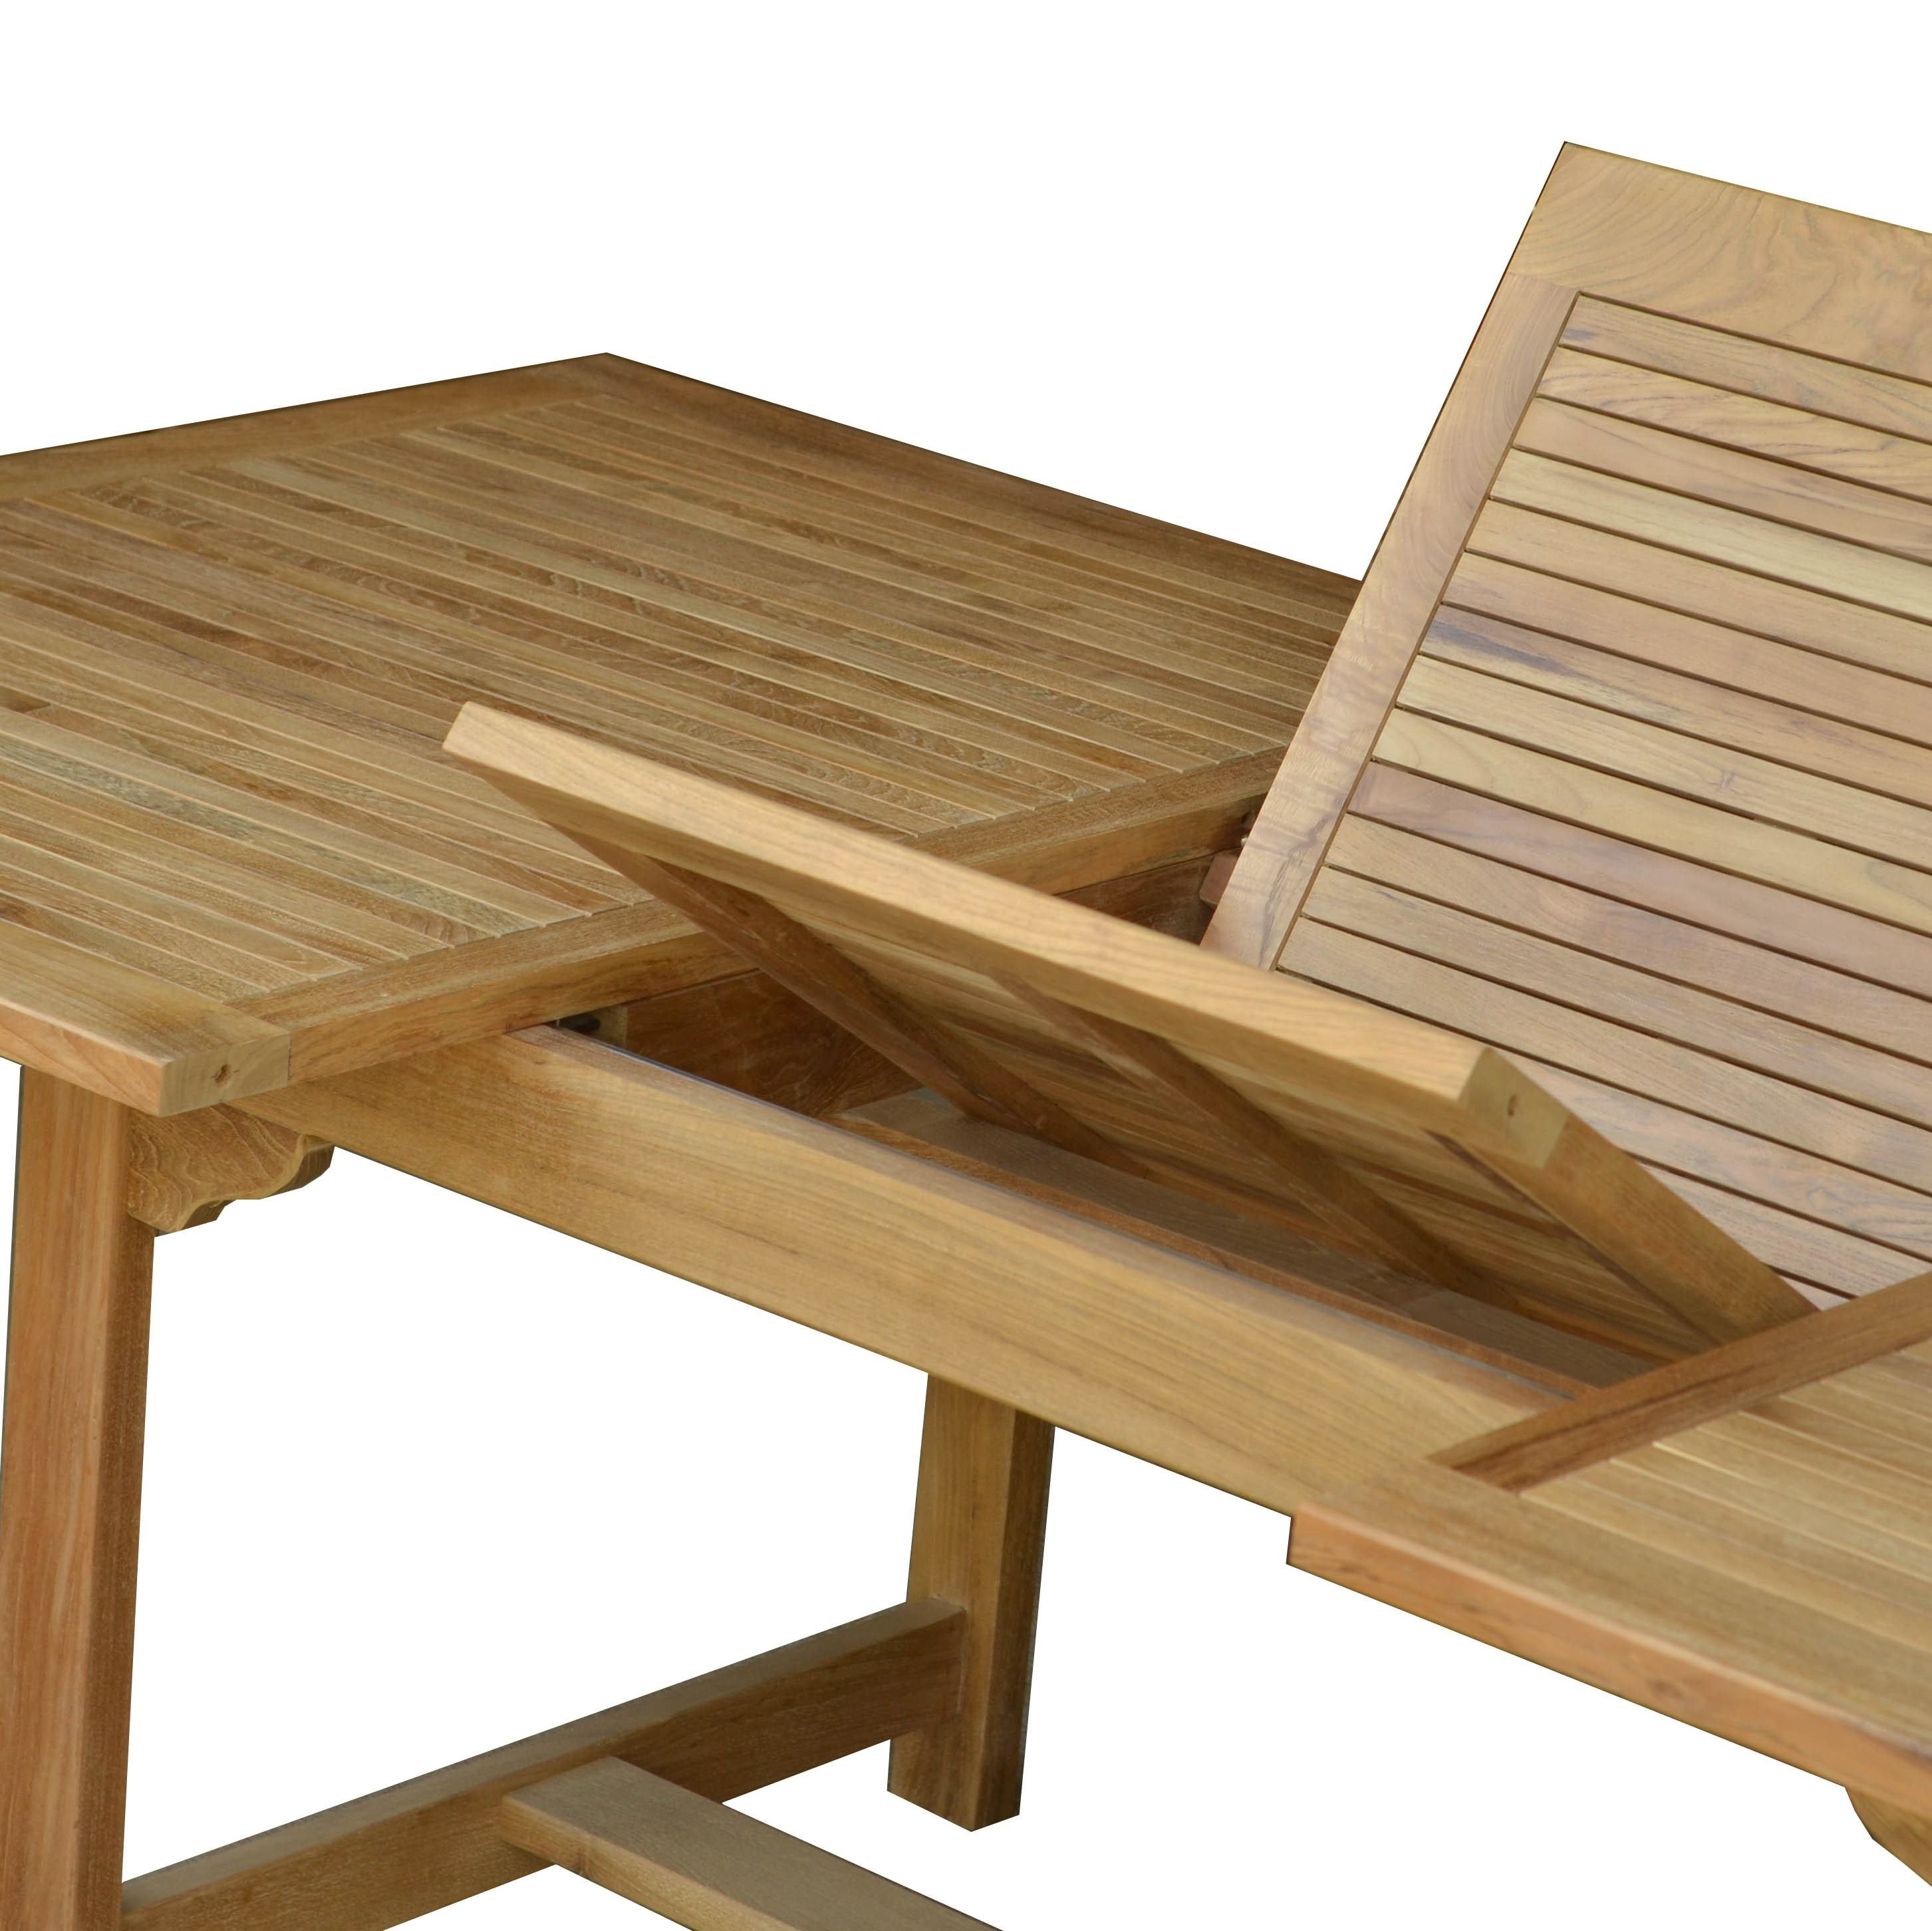 Best Quality Bernadette Extention Table From Teak Wood For Outdoor Furniture